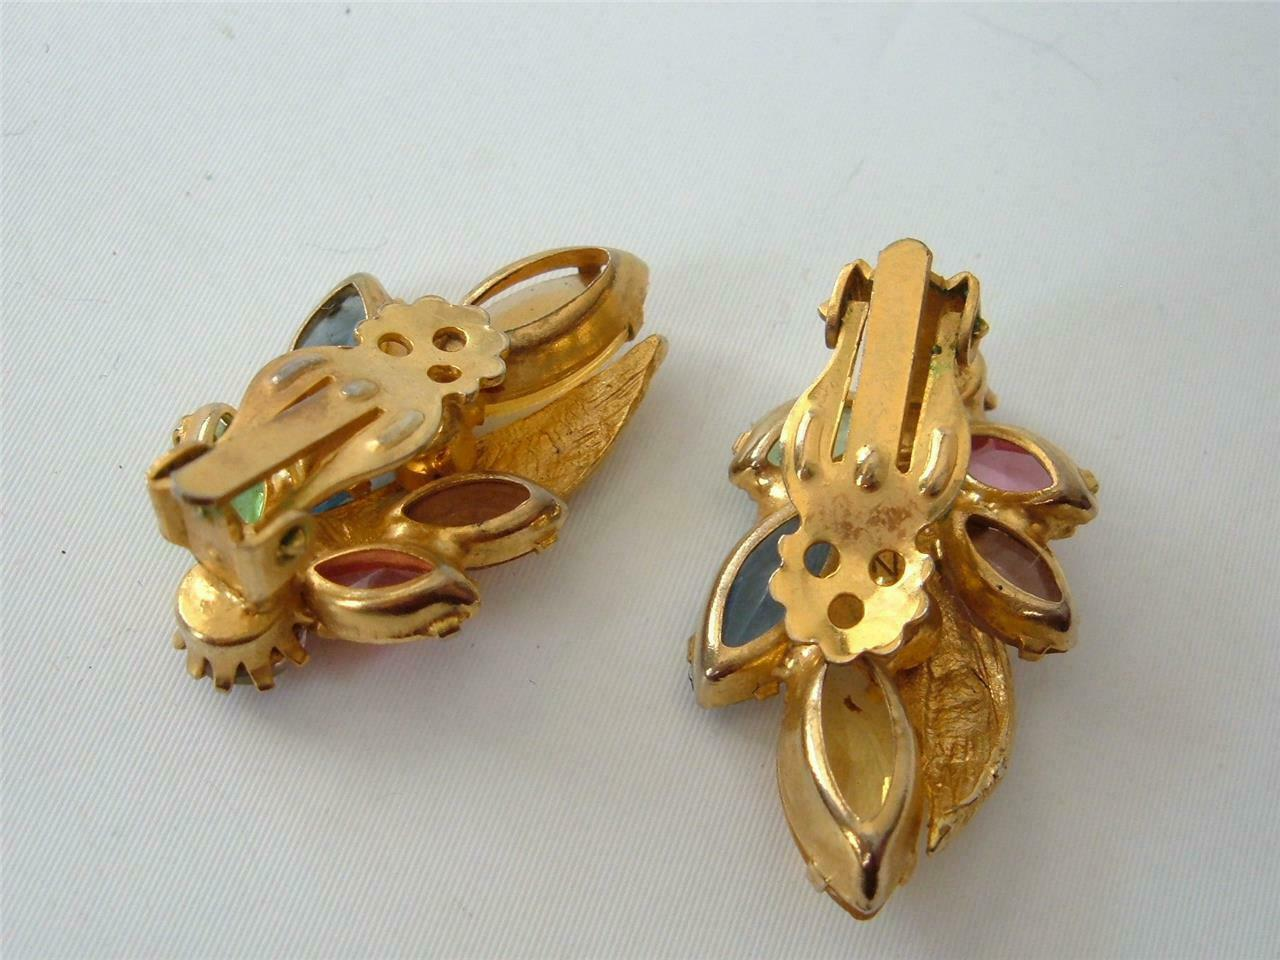 Juliana Delizza & Elster Multicolor Earrings Gold Tone Open Back Pastels Clips